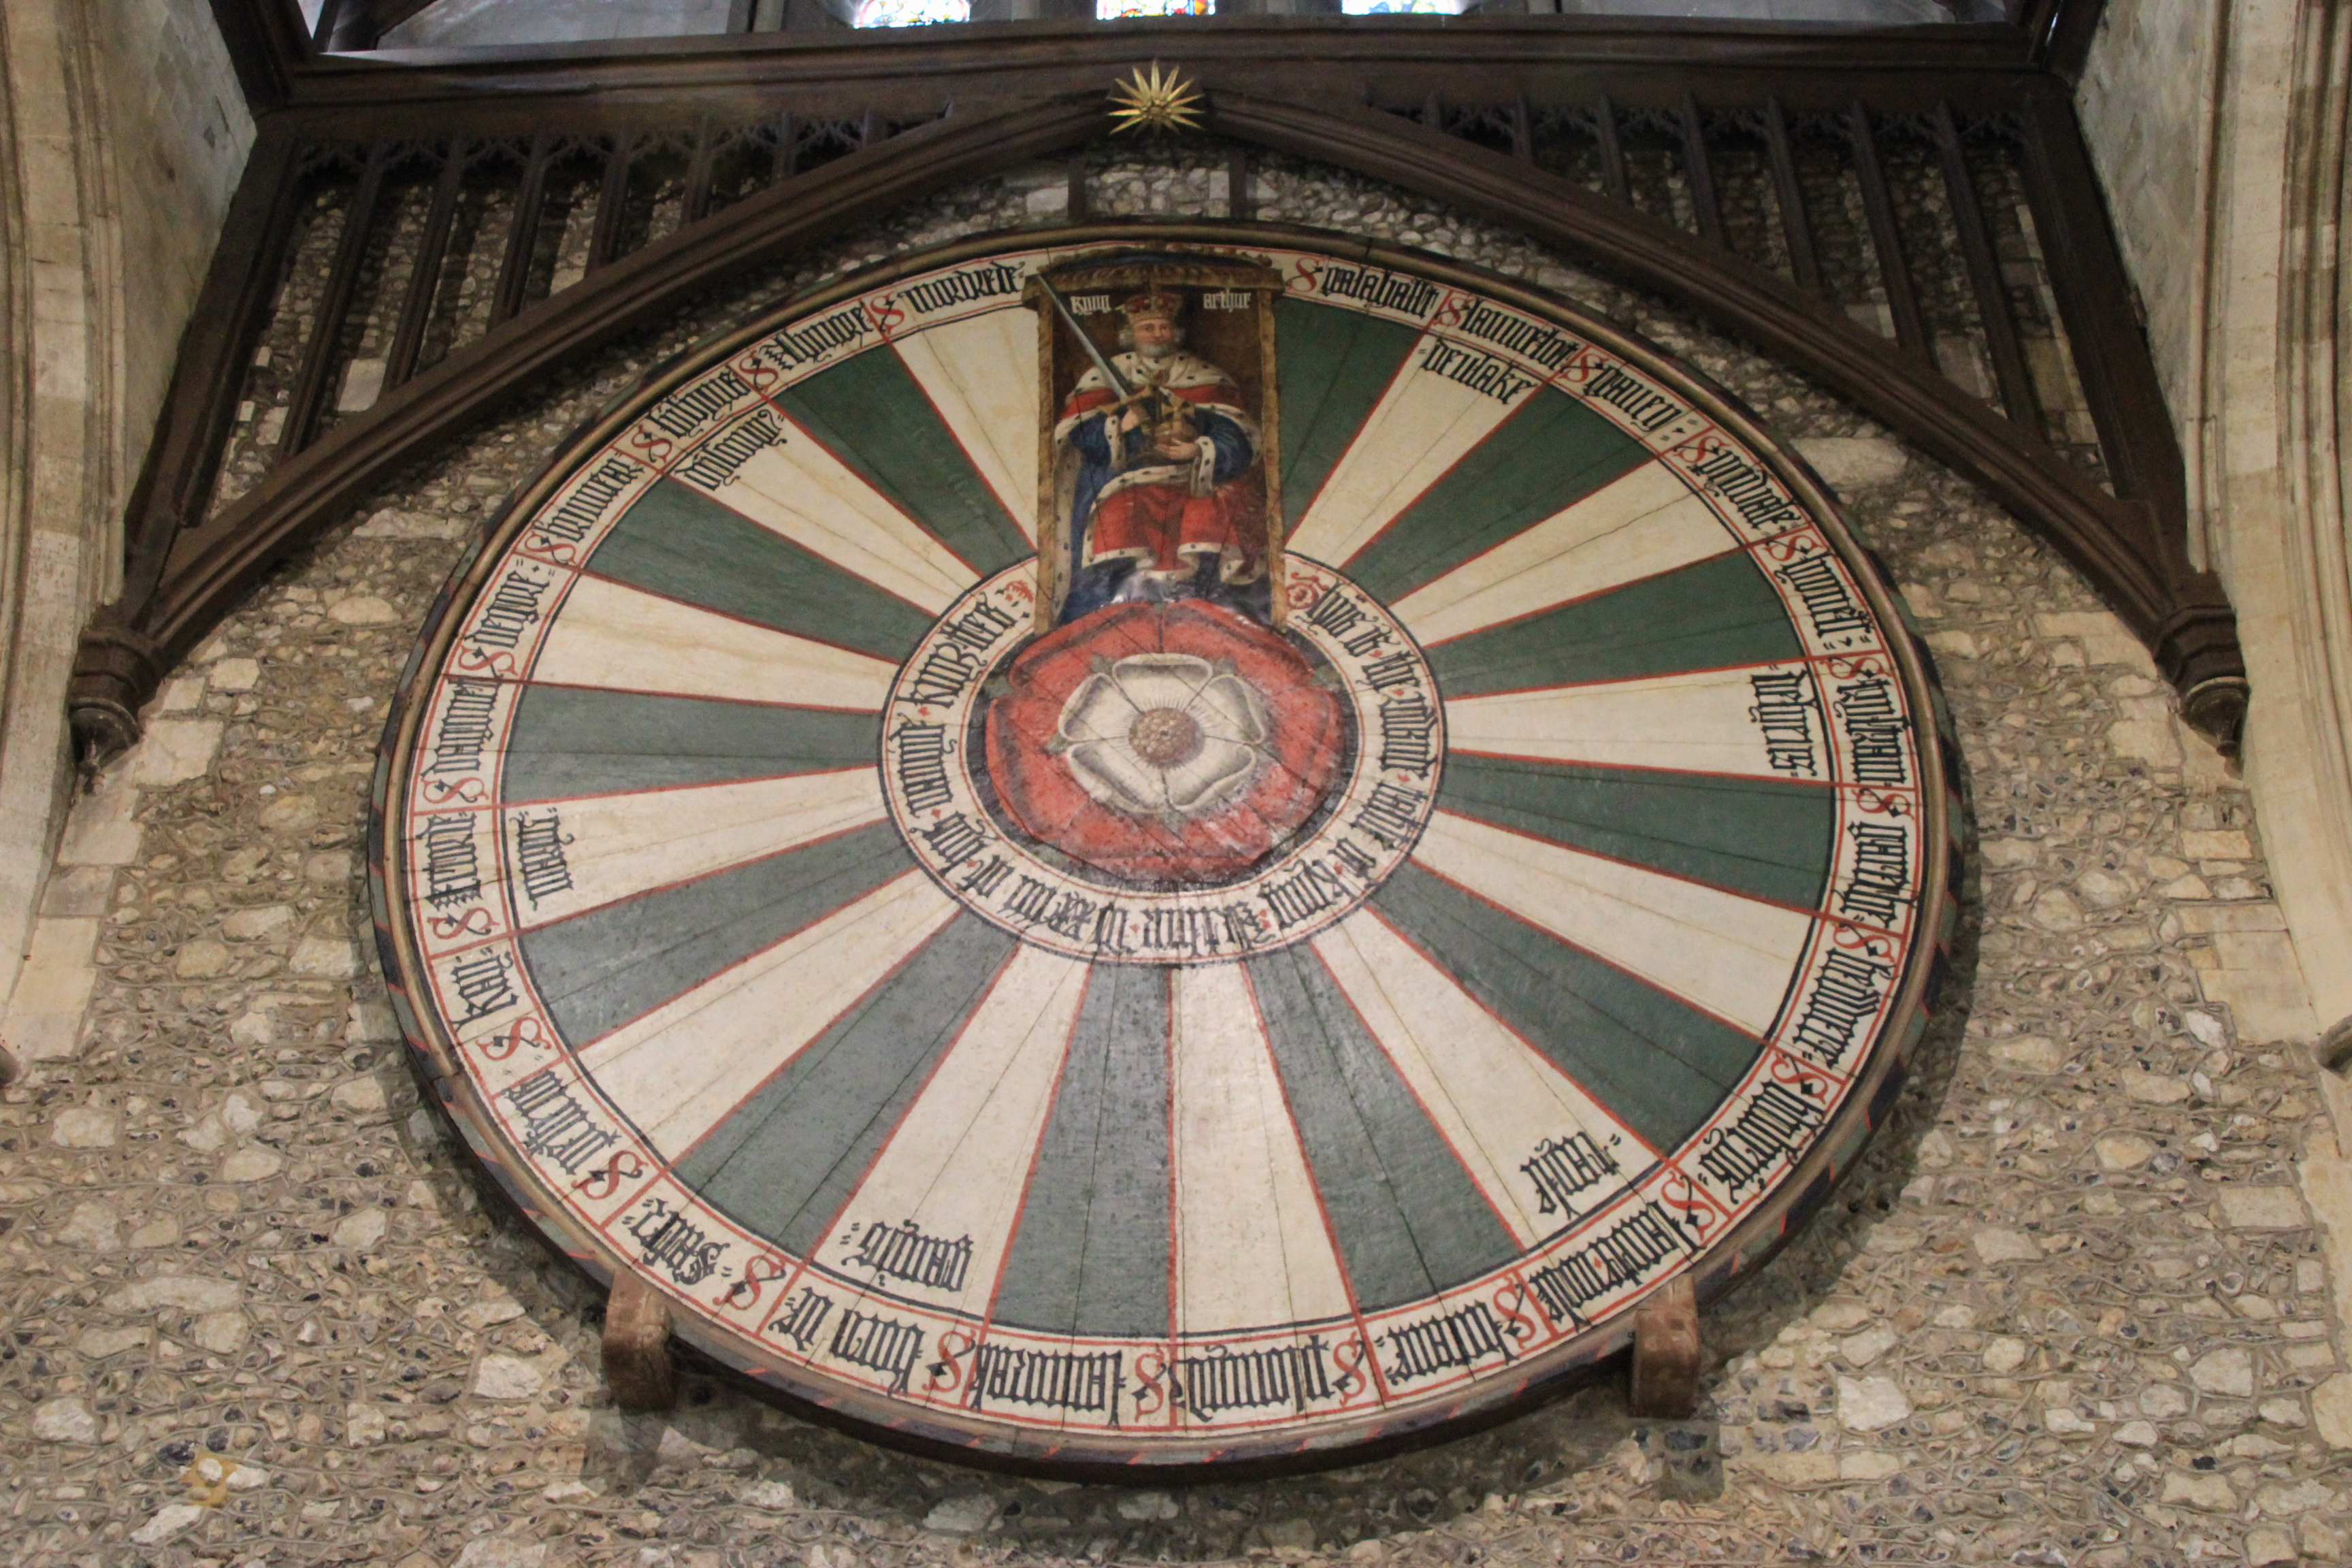 King Arthur's Round Table, Great Hall Winchester Wibke Carter